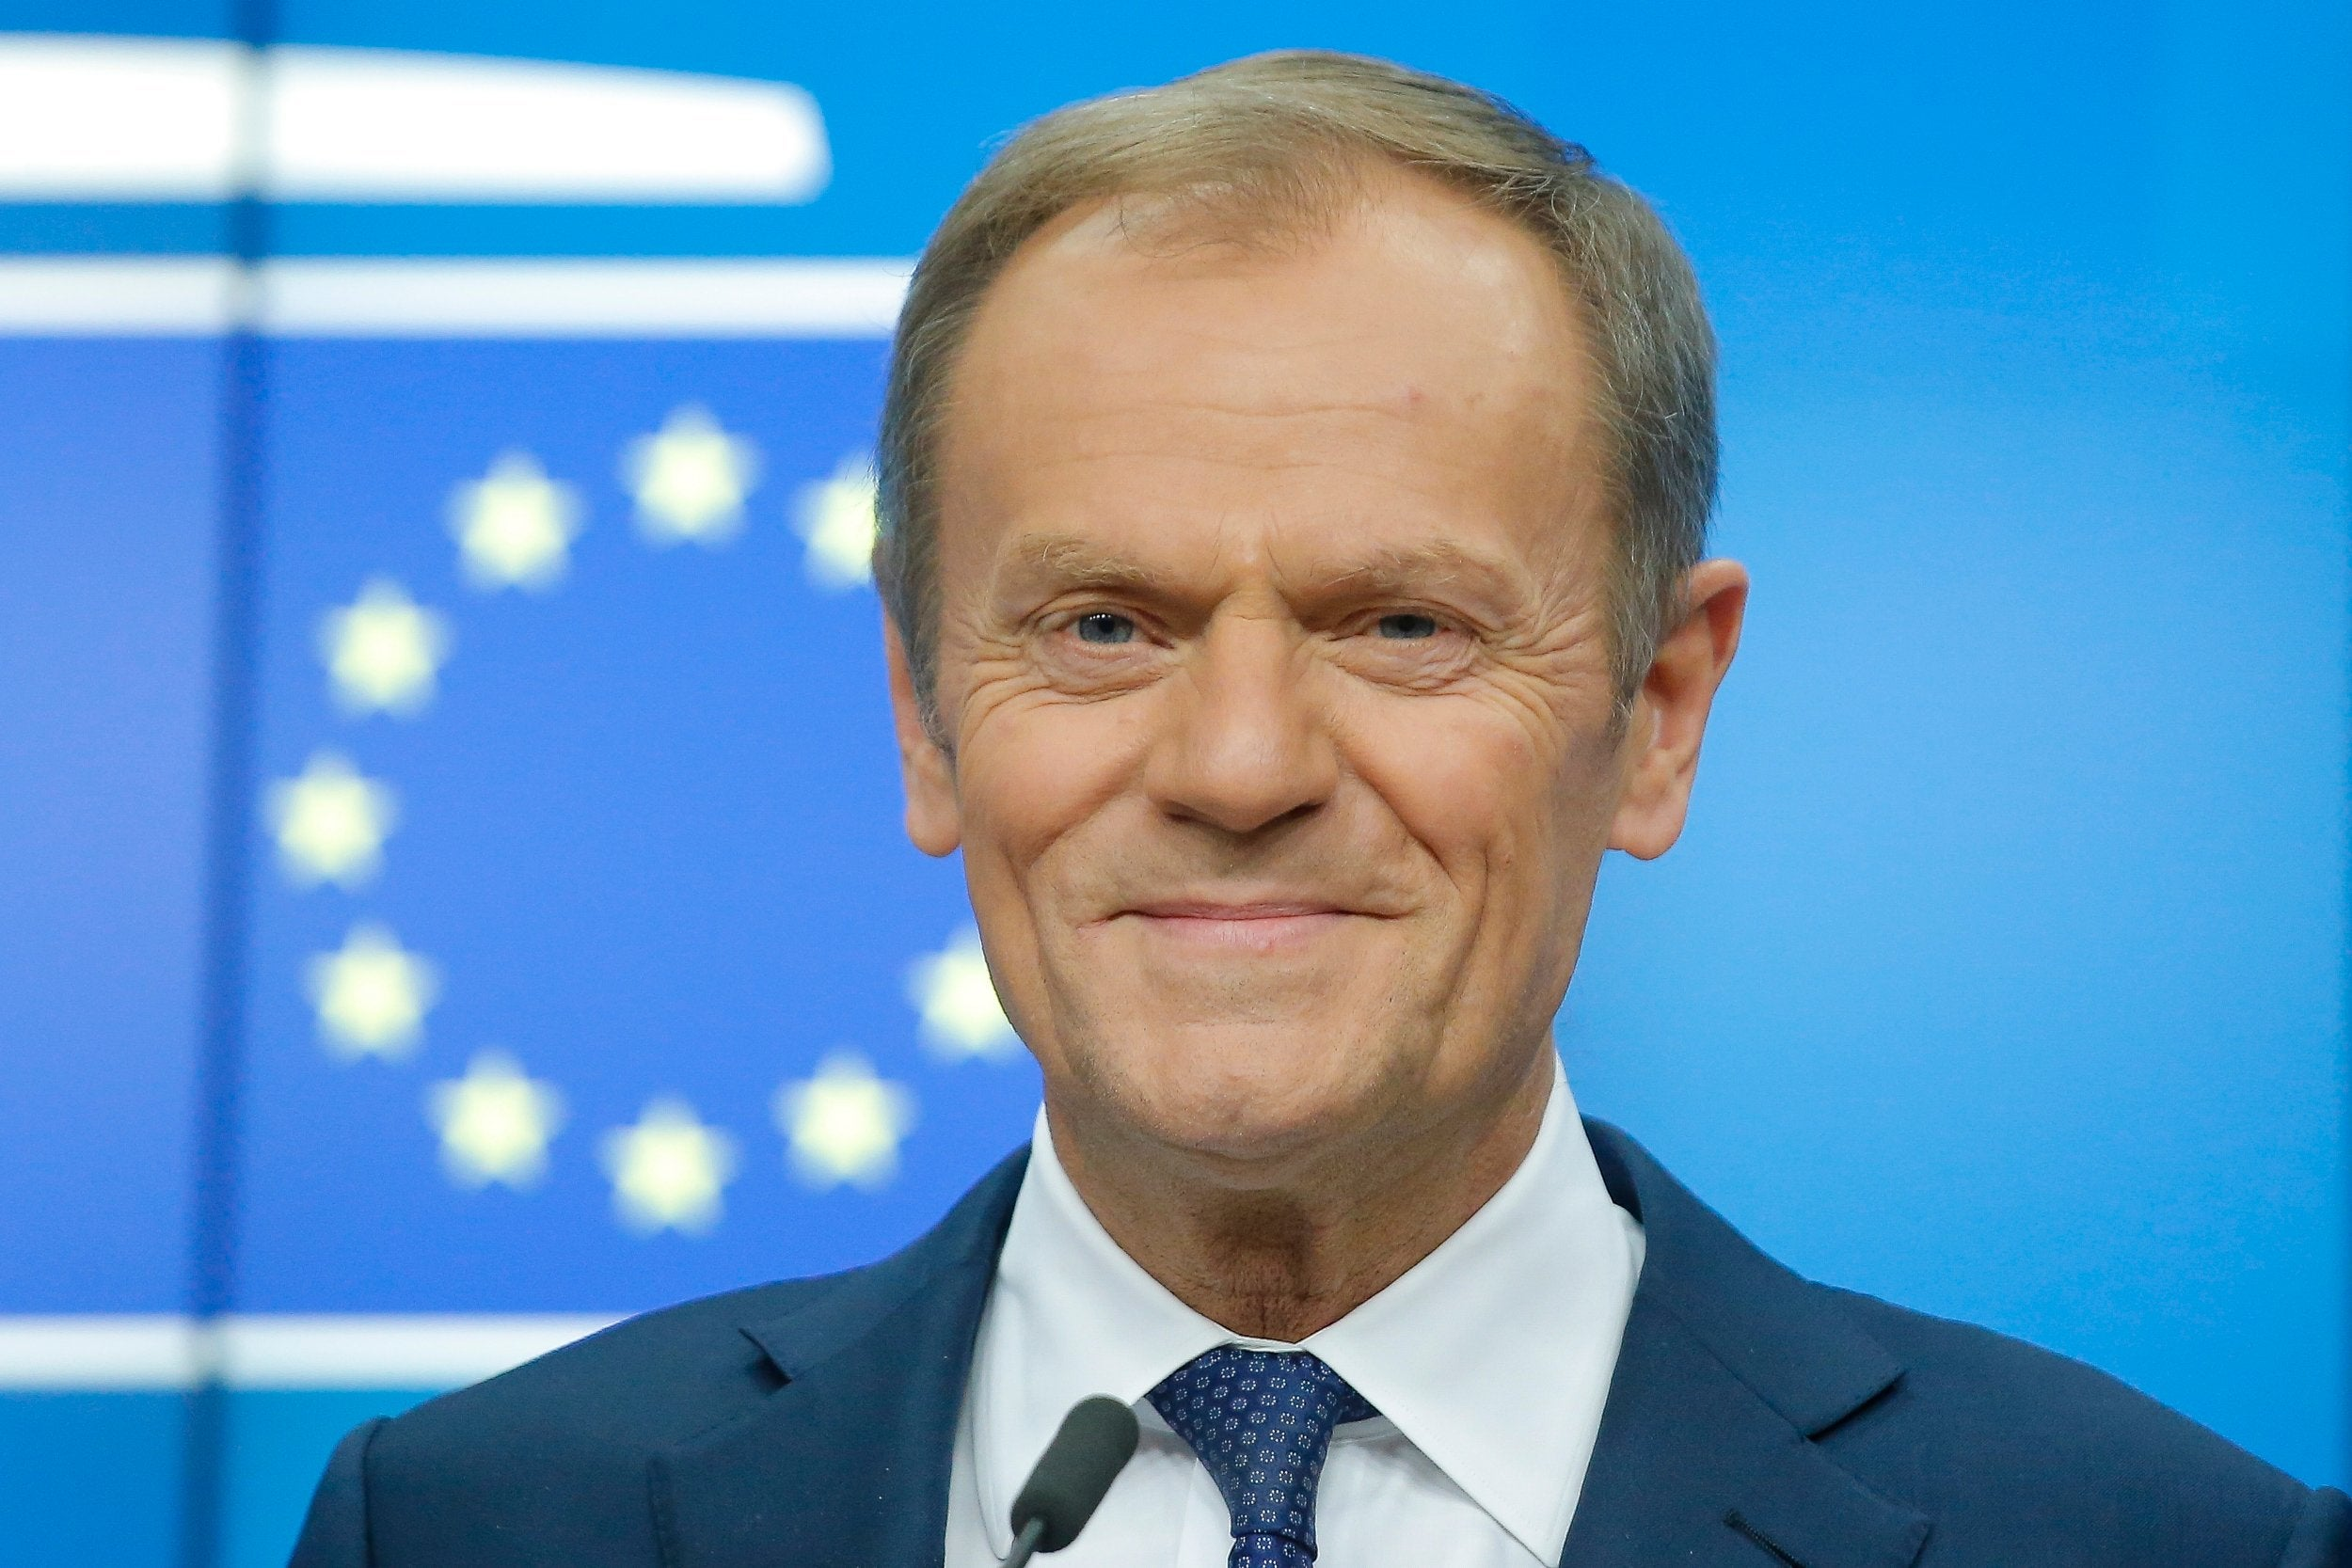 Brexit delay deal means 'anything is possible' including revoking Article 50, says EU president Donald Tusk